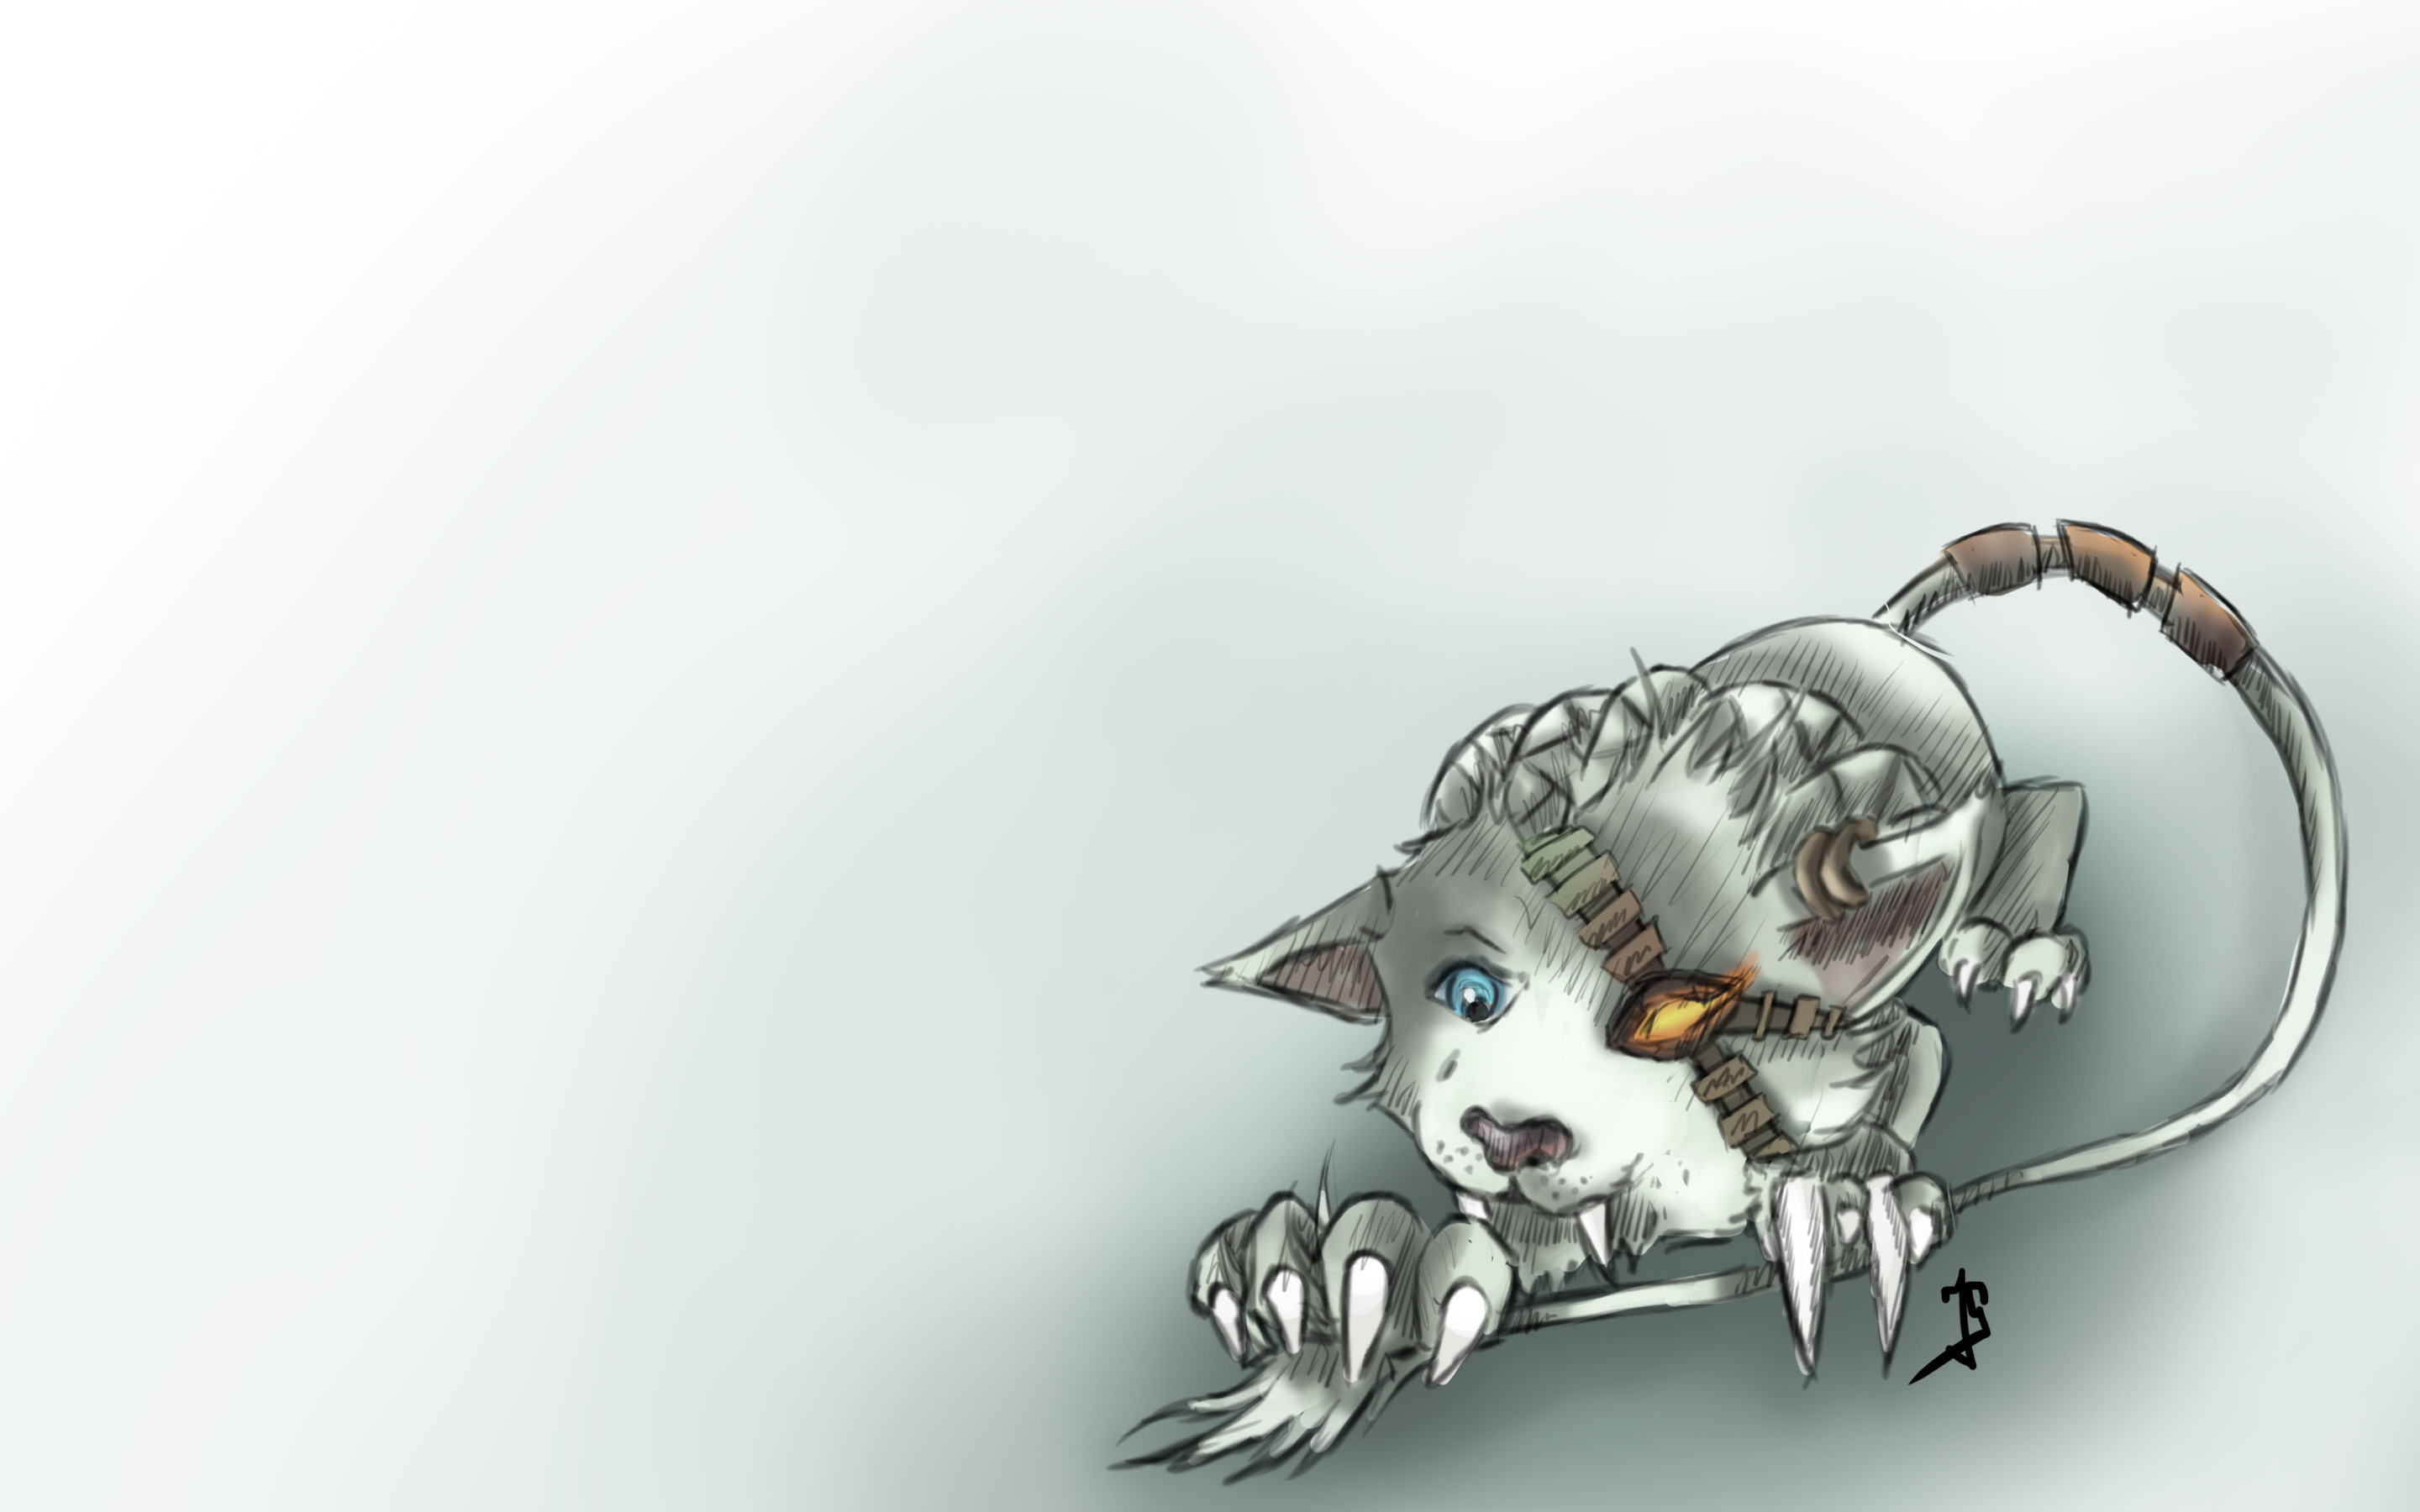 Cute Rengar wallpaper